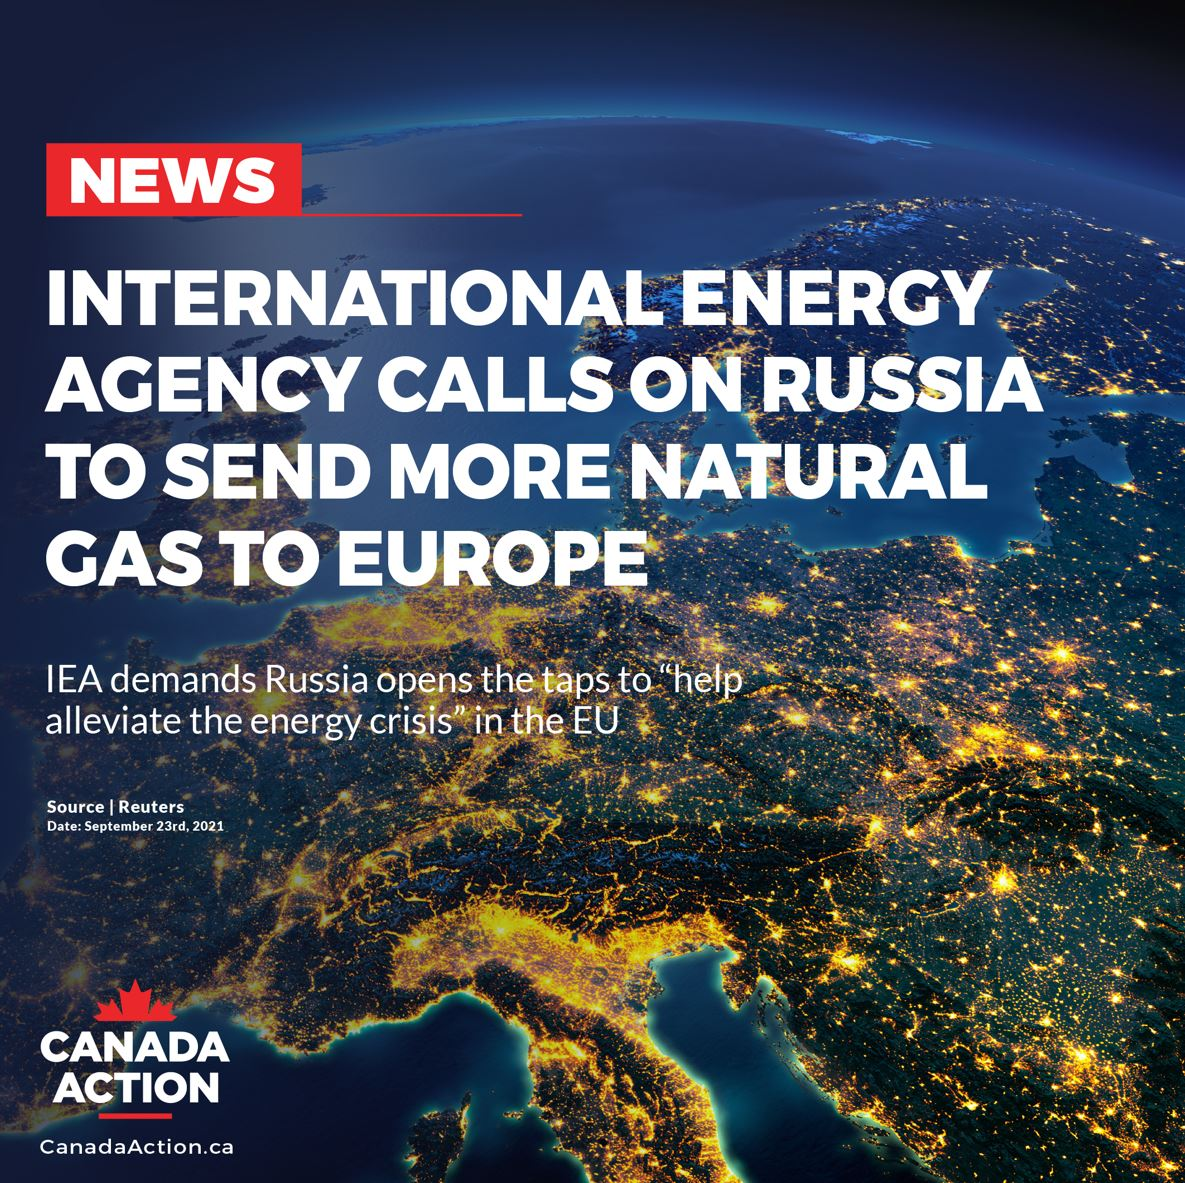 global energy shortage in 2021 IEA calls on suppliers to open up taps to EU